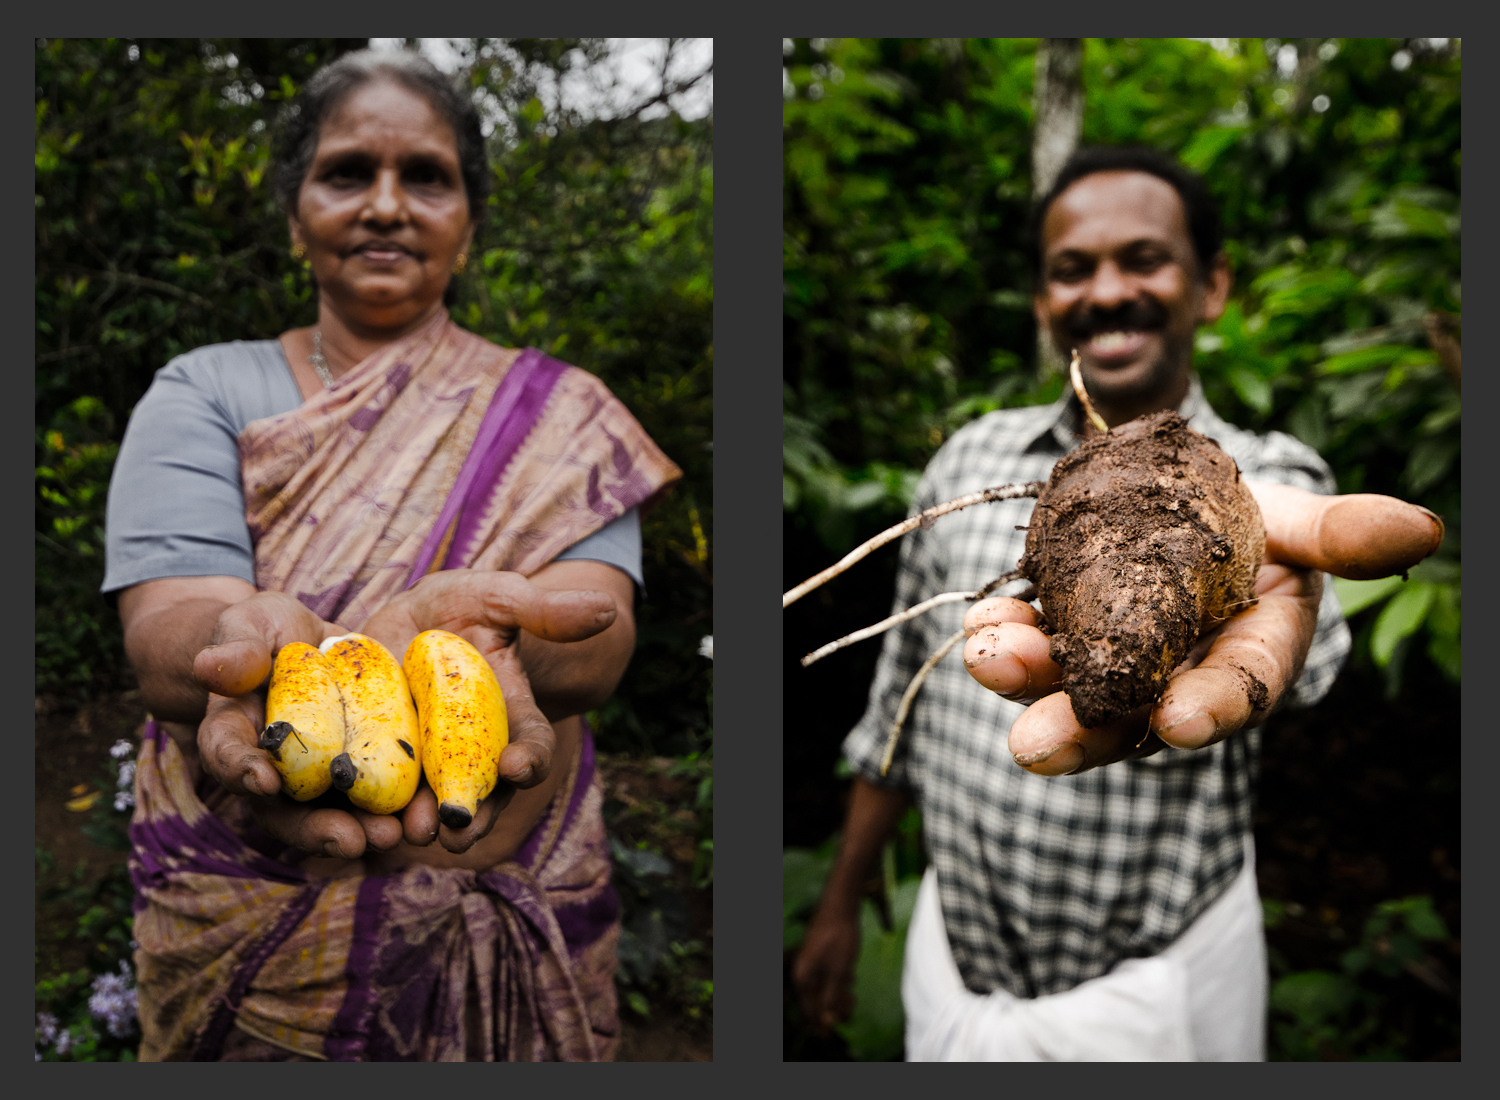 AvdS_indian-farmers_duo02